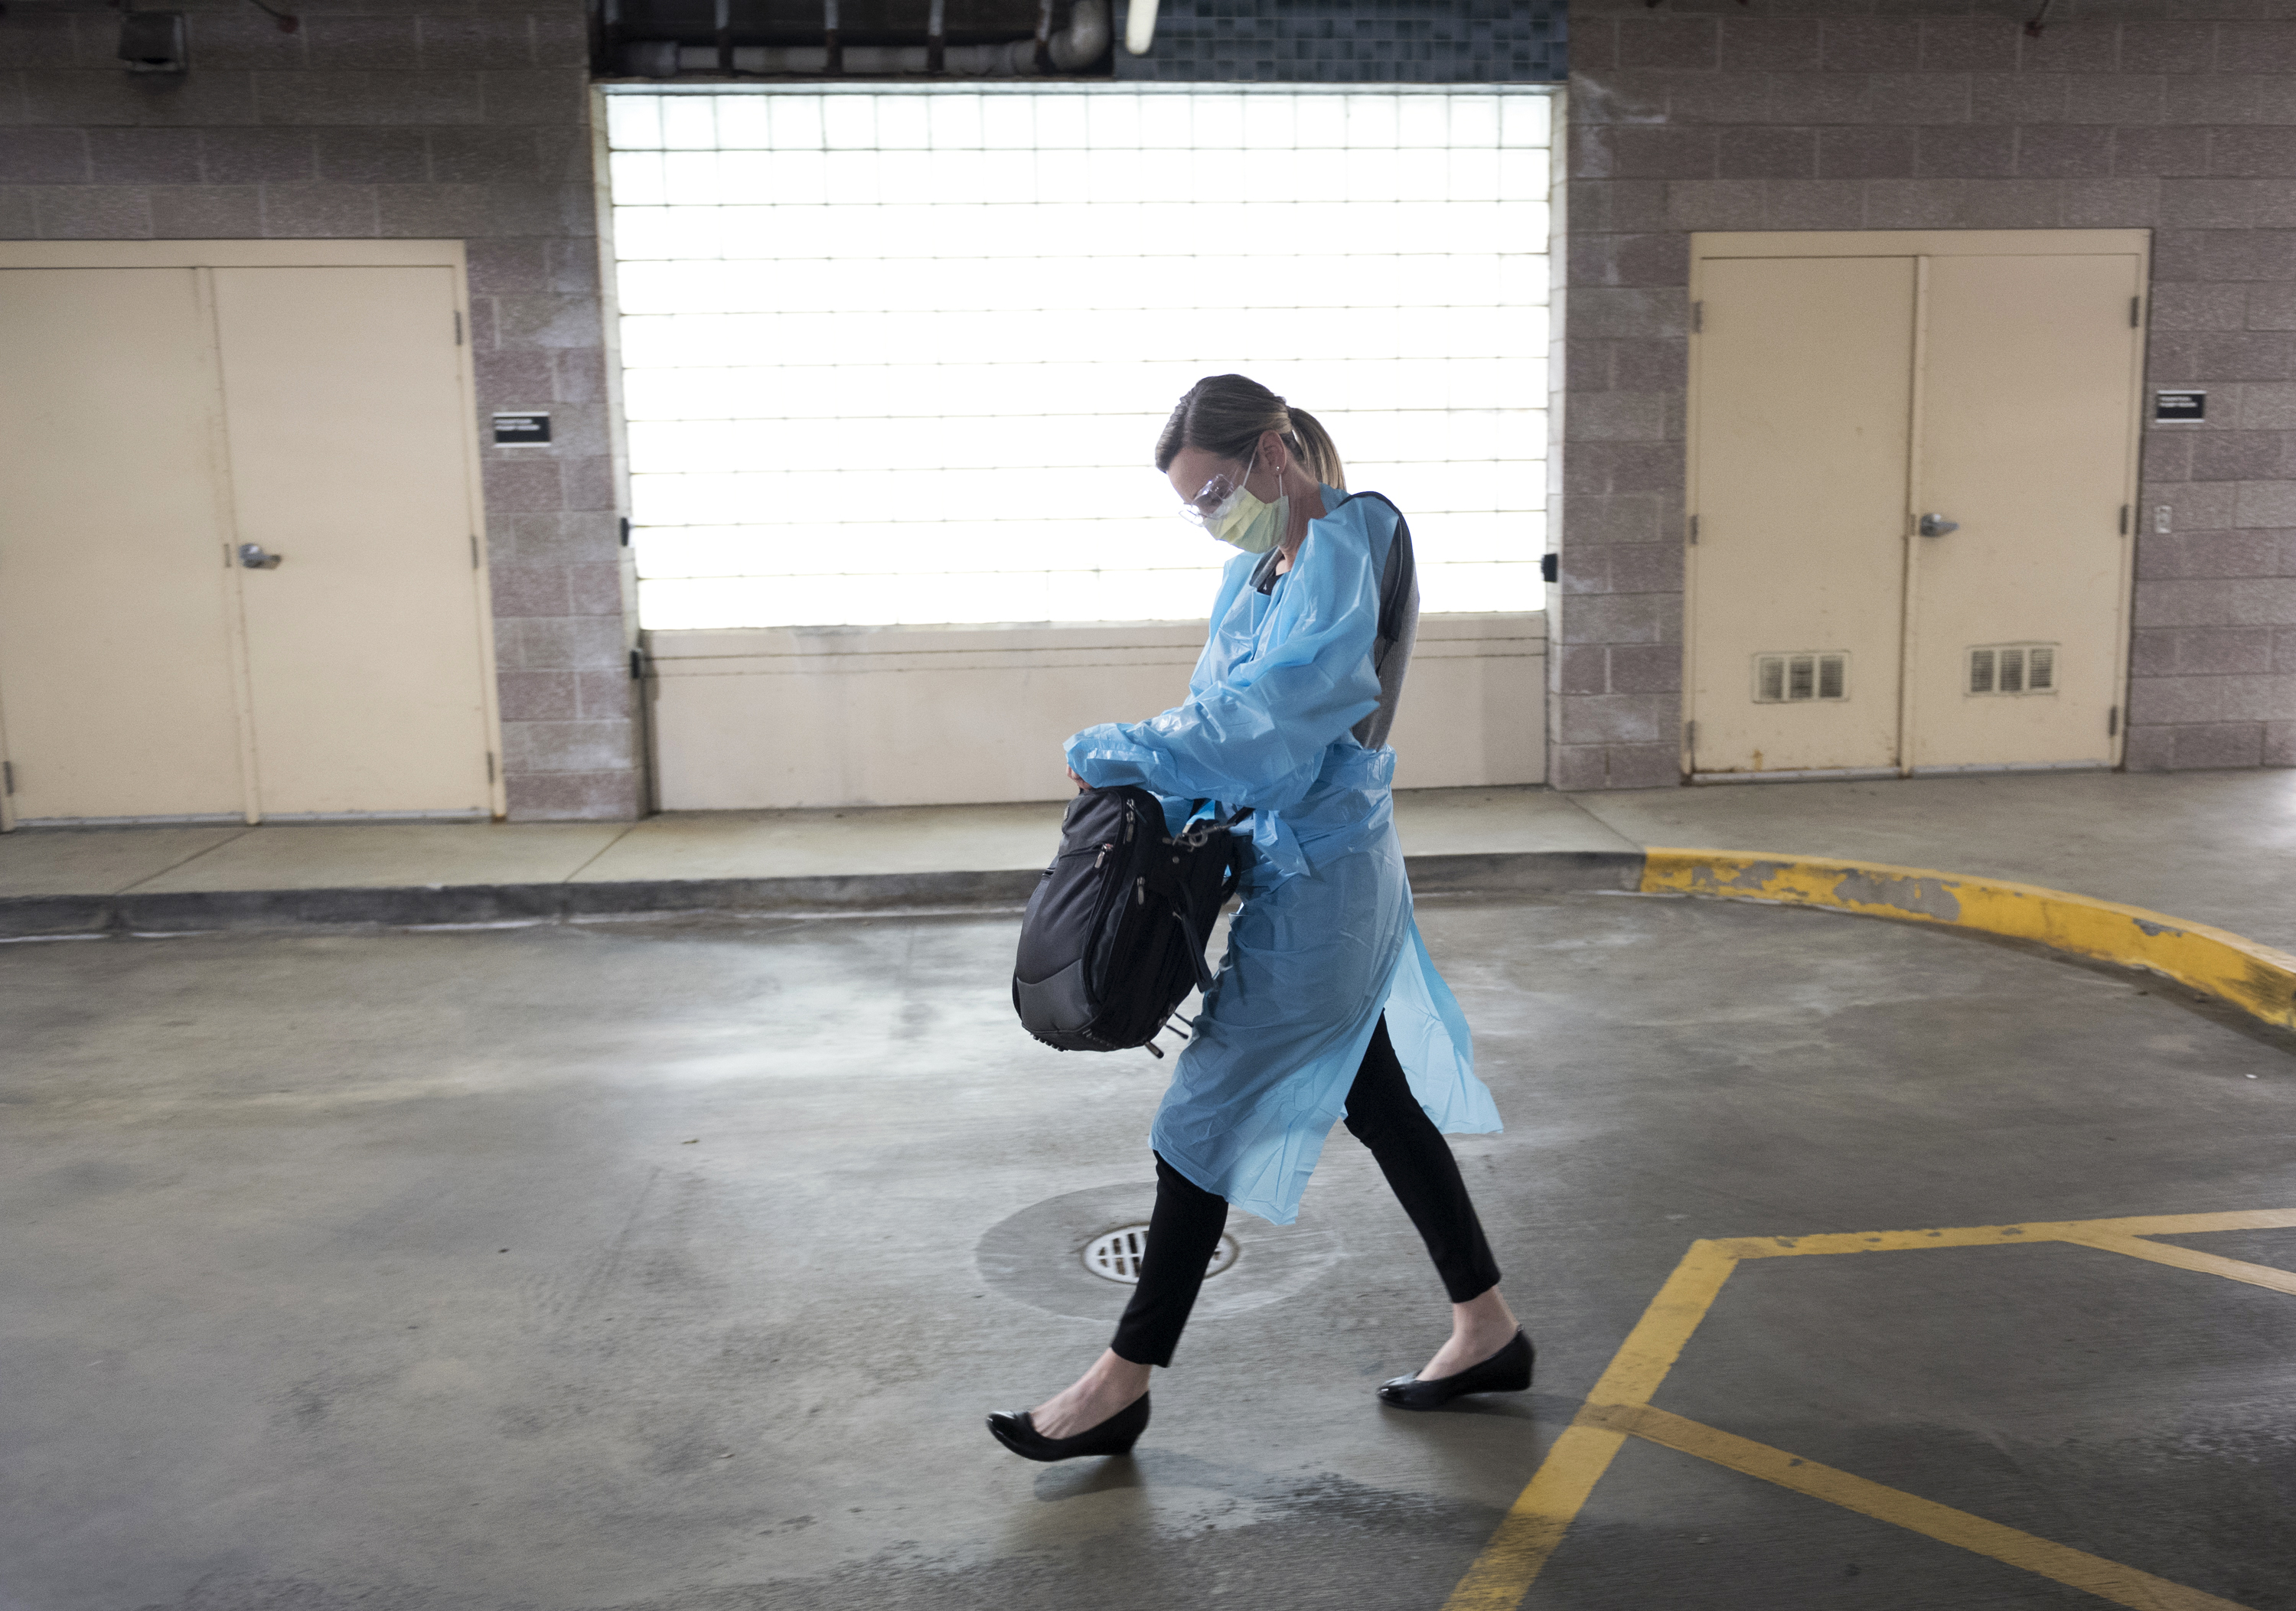 A Novant Health provider walks out to the parking lot for a sick visit.